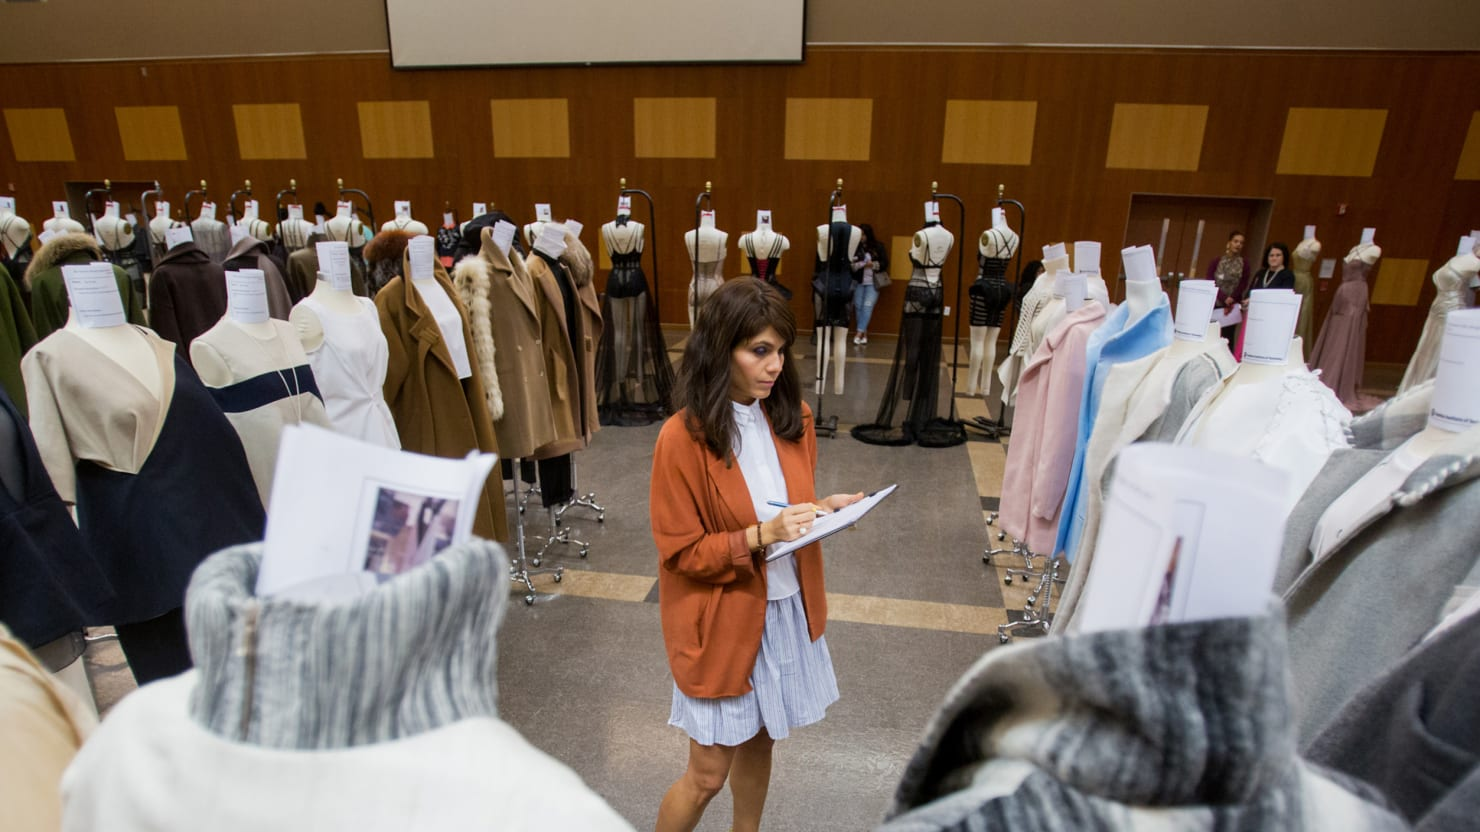 The Future of Fashion Is in Their Hands